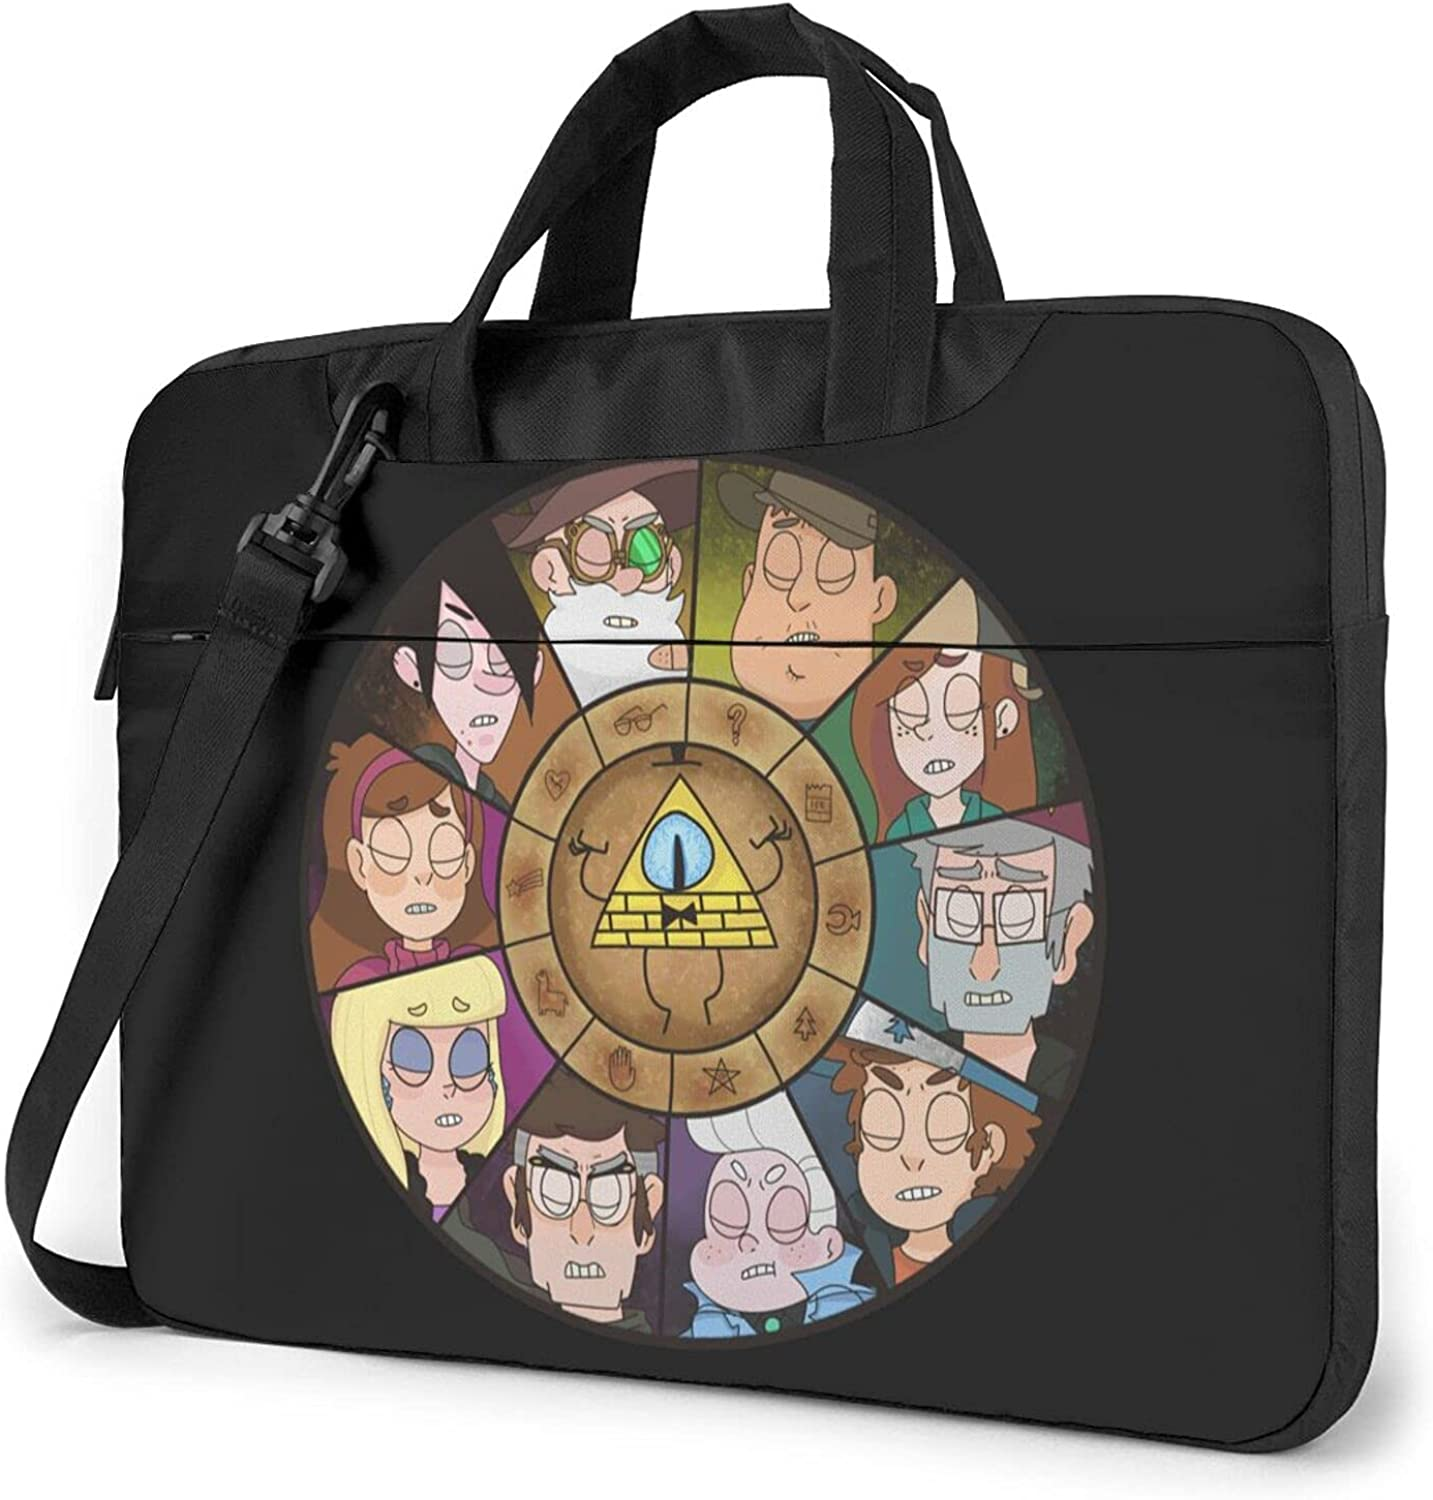 Gravity Falls Laptop Sleeve National uniform free shipping Bag Briefcase Portable Ultra Work Max 81% OFF Sh